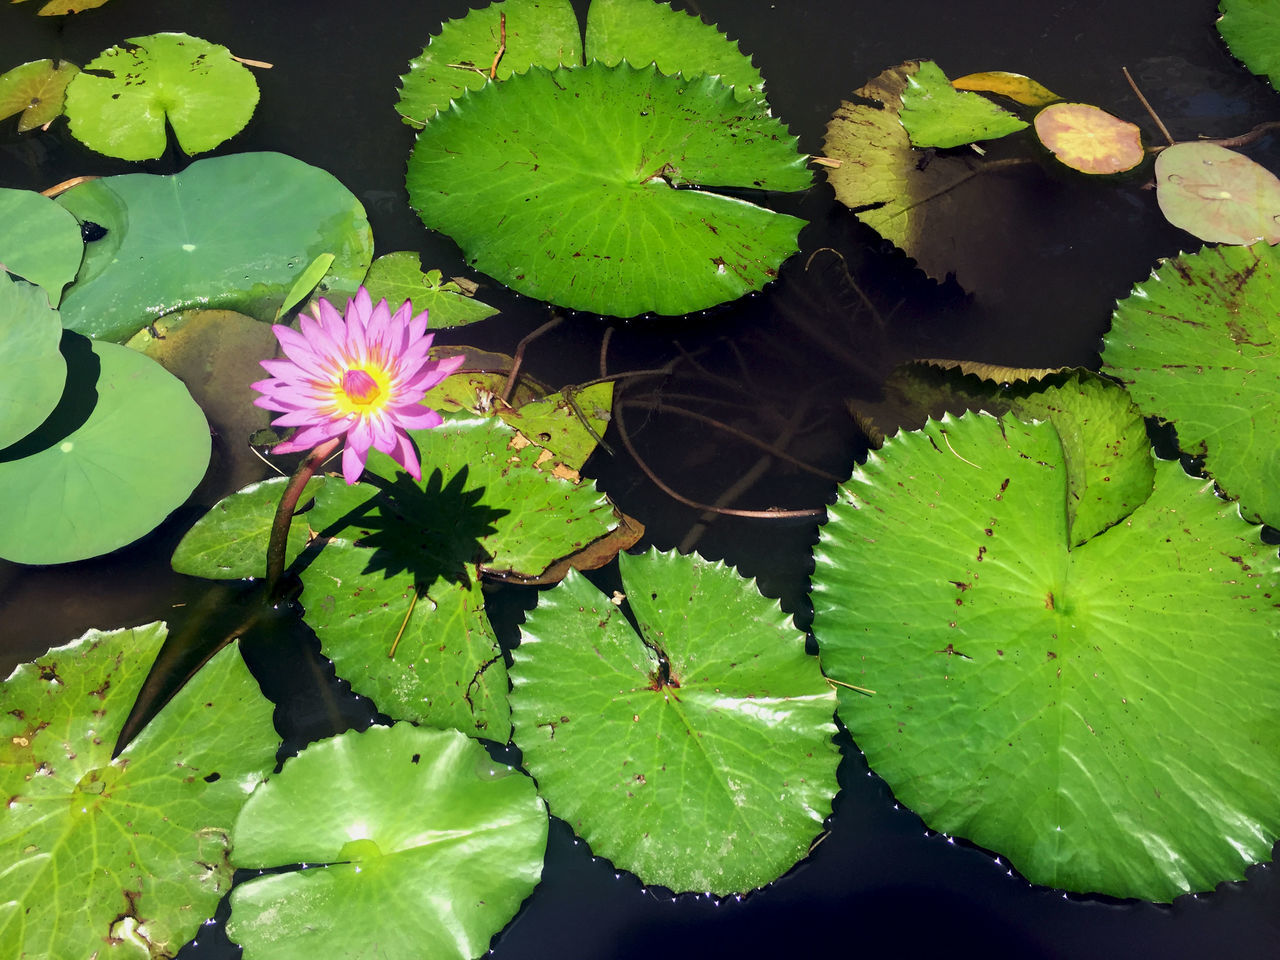 Beauty In Nature Day Floating On Water Flower Flower Head Fragility Freshness Green Color Growth Leaf Lily Pad Lotus Lotus Water Lily Nature No People Outdoors Petal Plant Water Water Lily